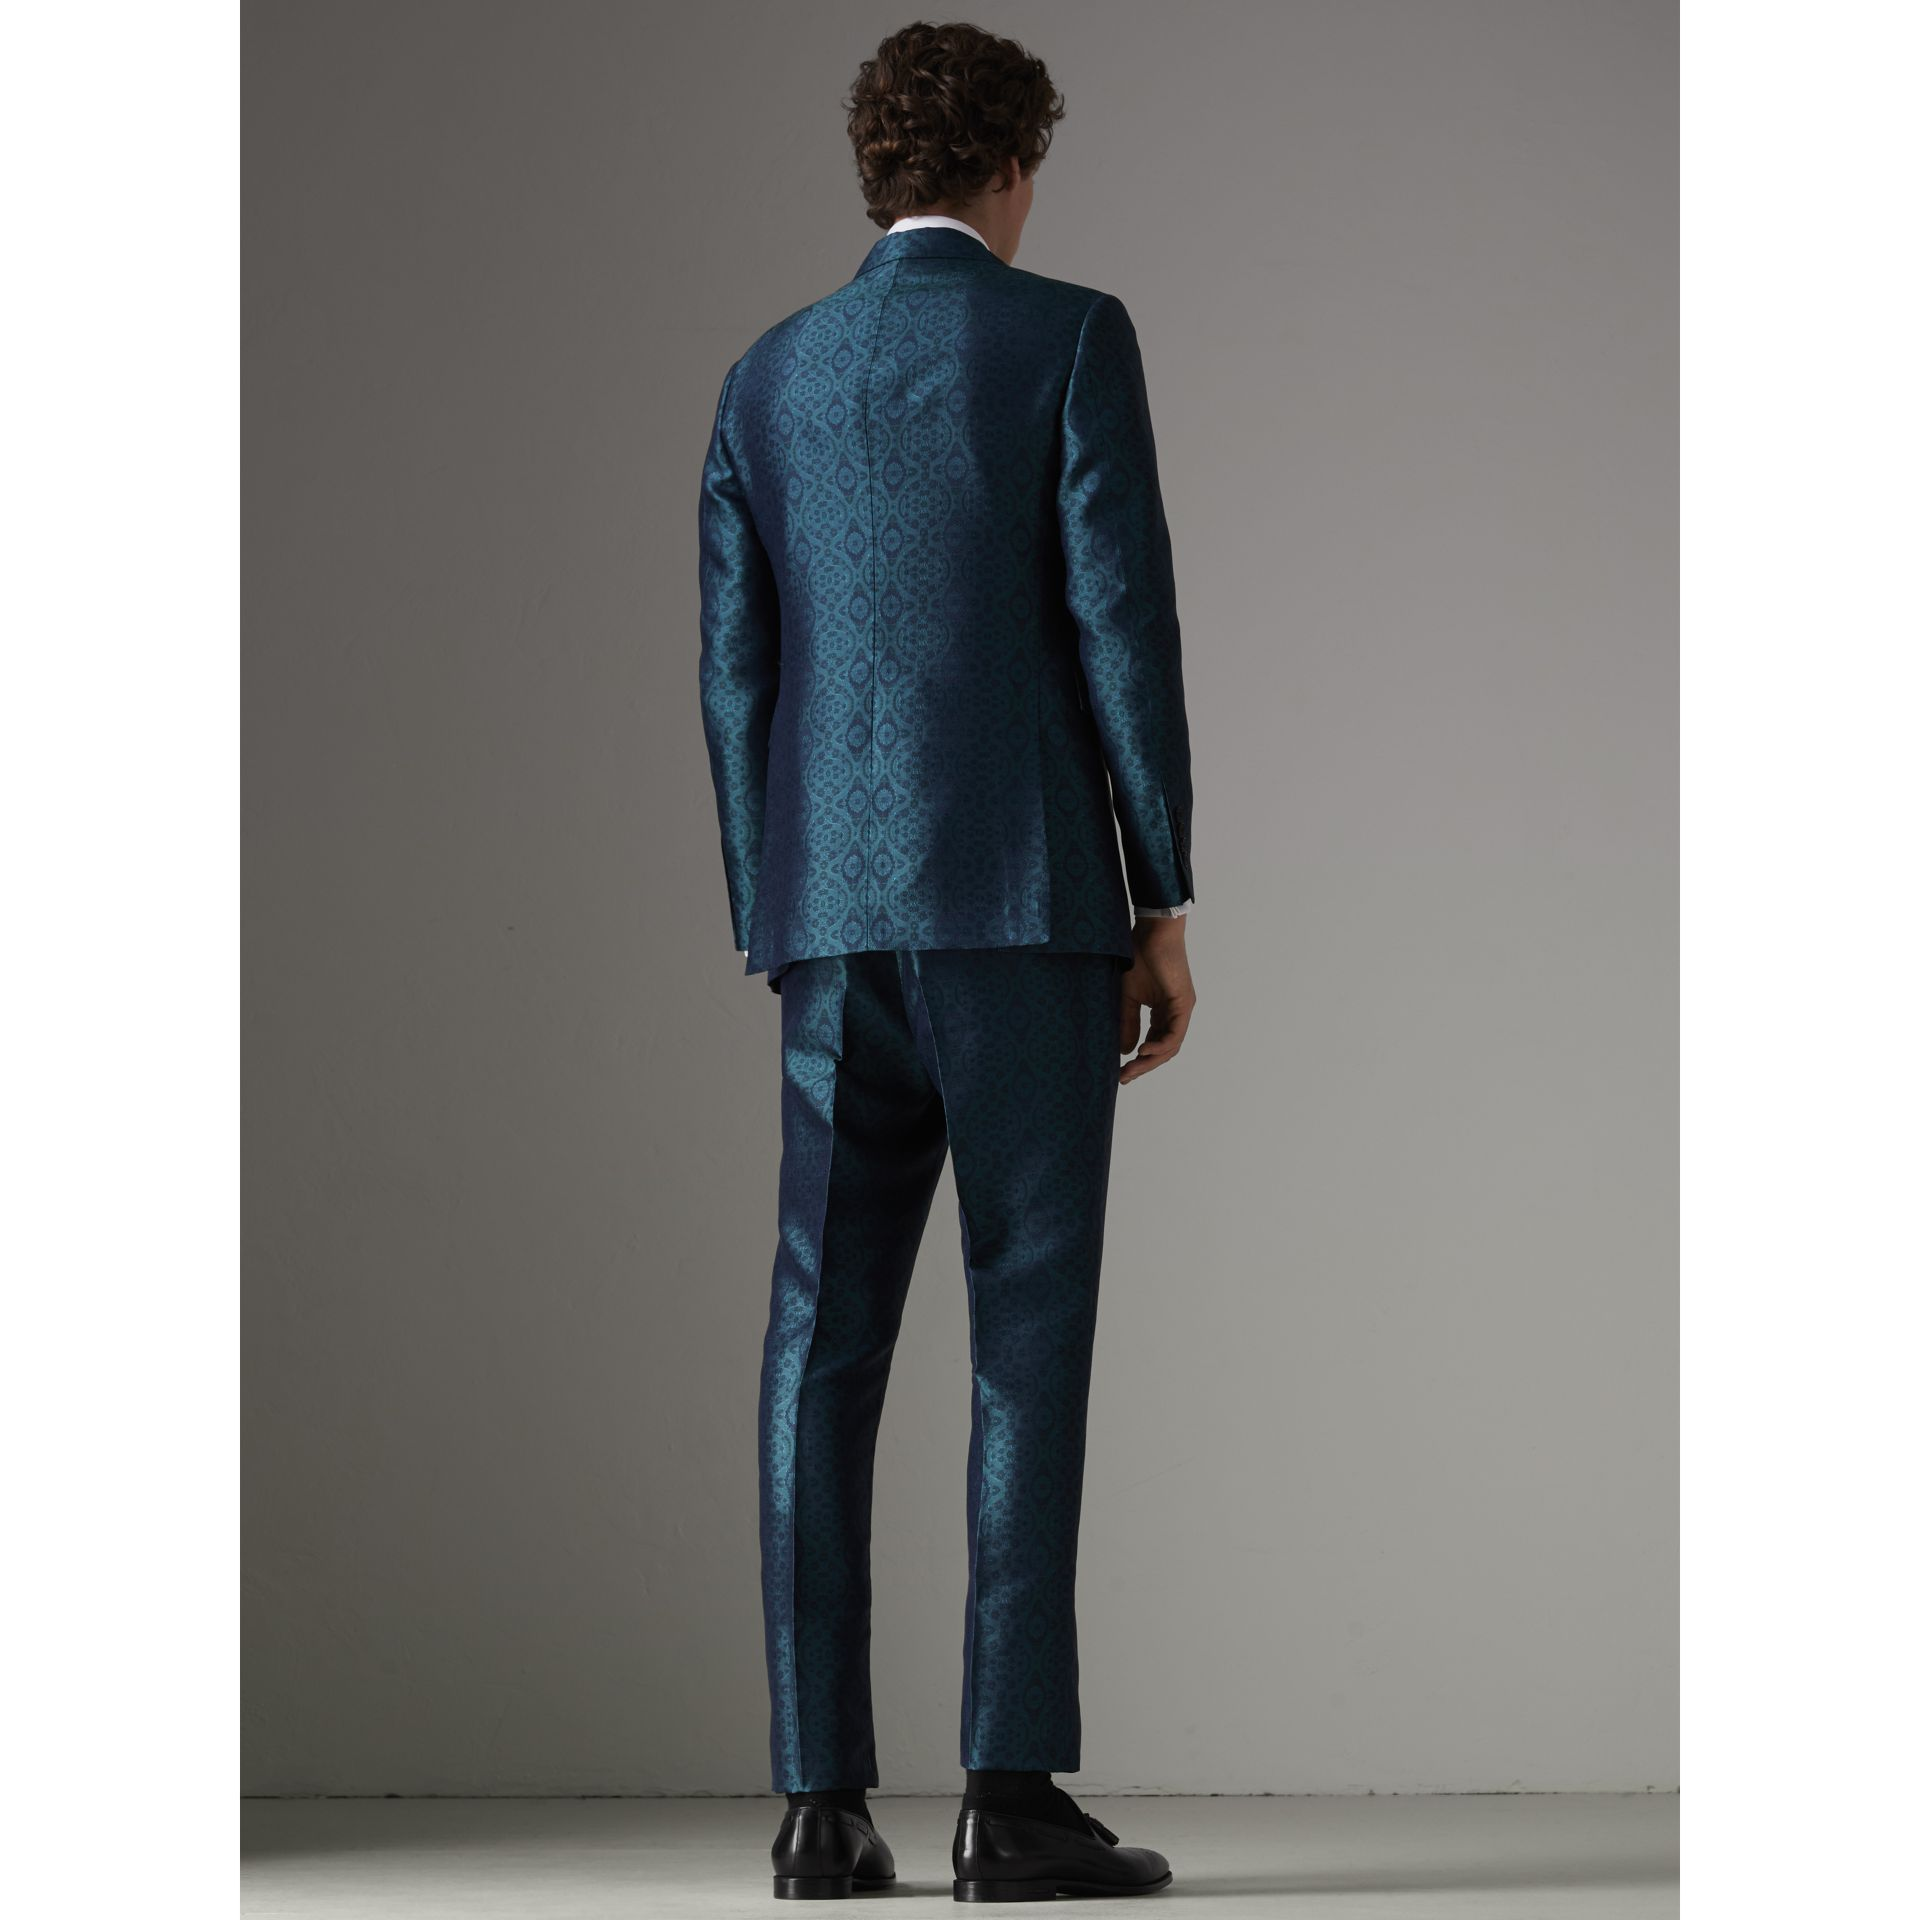 Soho Fit Geometric Silk Jacquard Suit in Dark Teal - Men | Burberry United Kingdom - gallery image 2